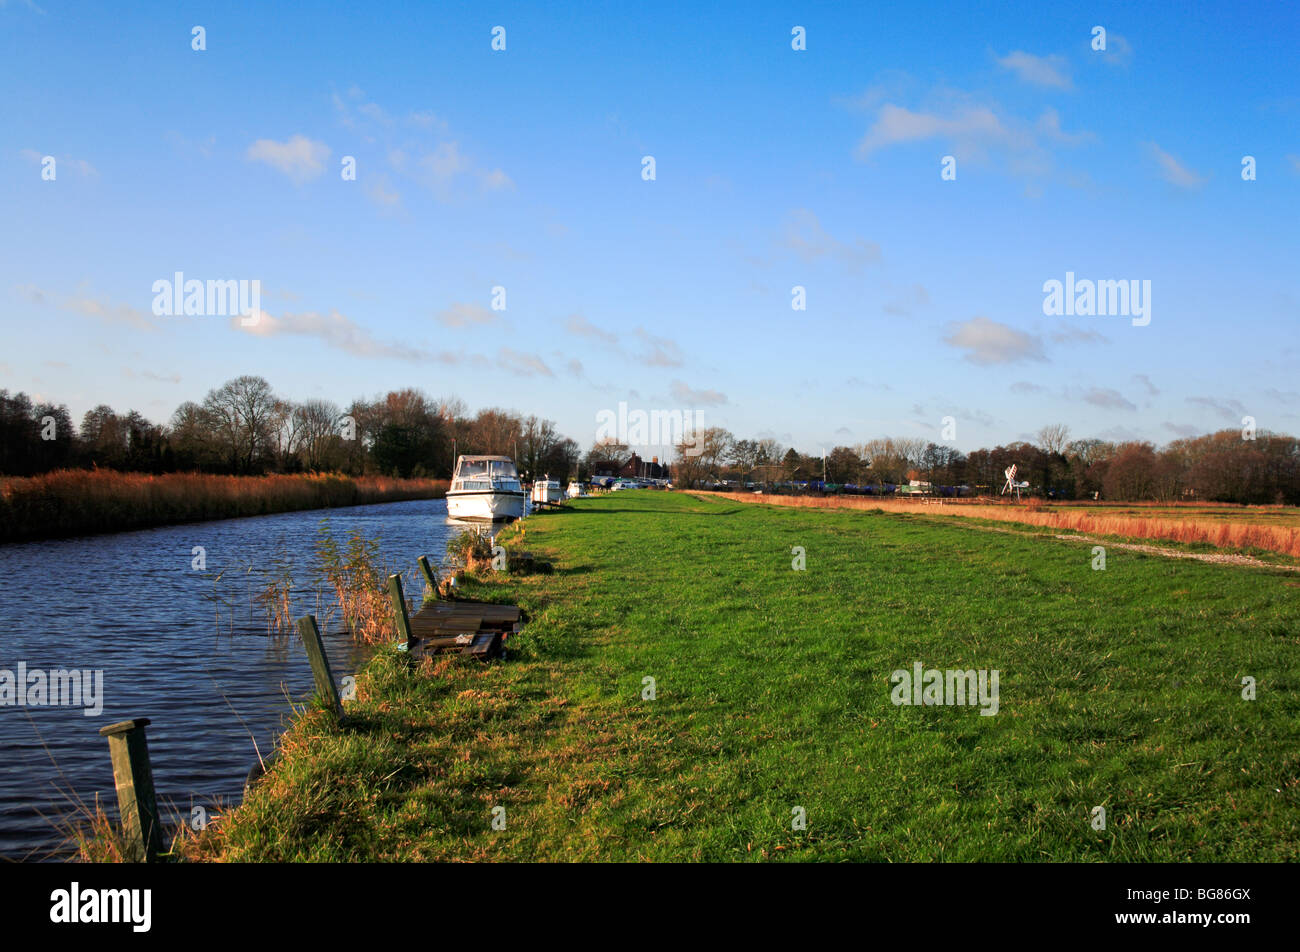 Upton Dyke with moored cruisers by public footpath at Upton, Norfolk, United Kingdom. - Stock Image